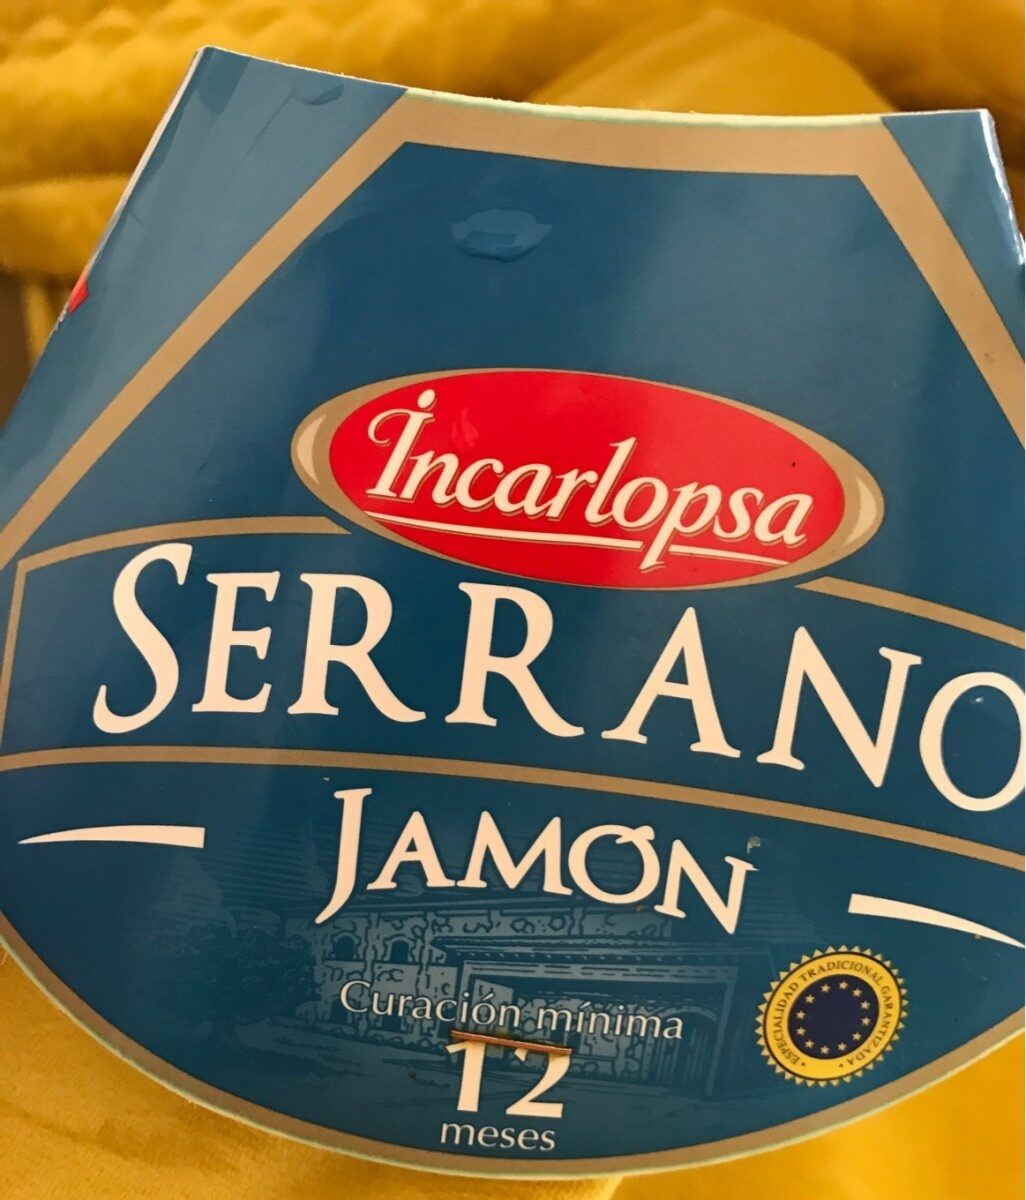 Jamon Serrano - Product - es